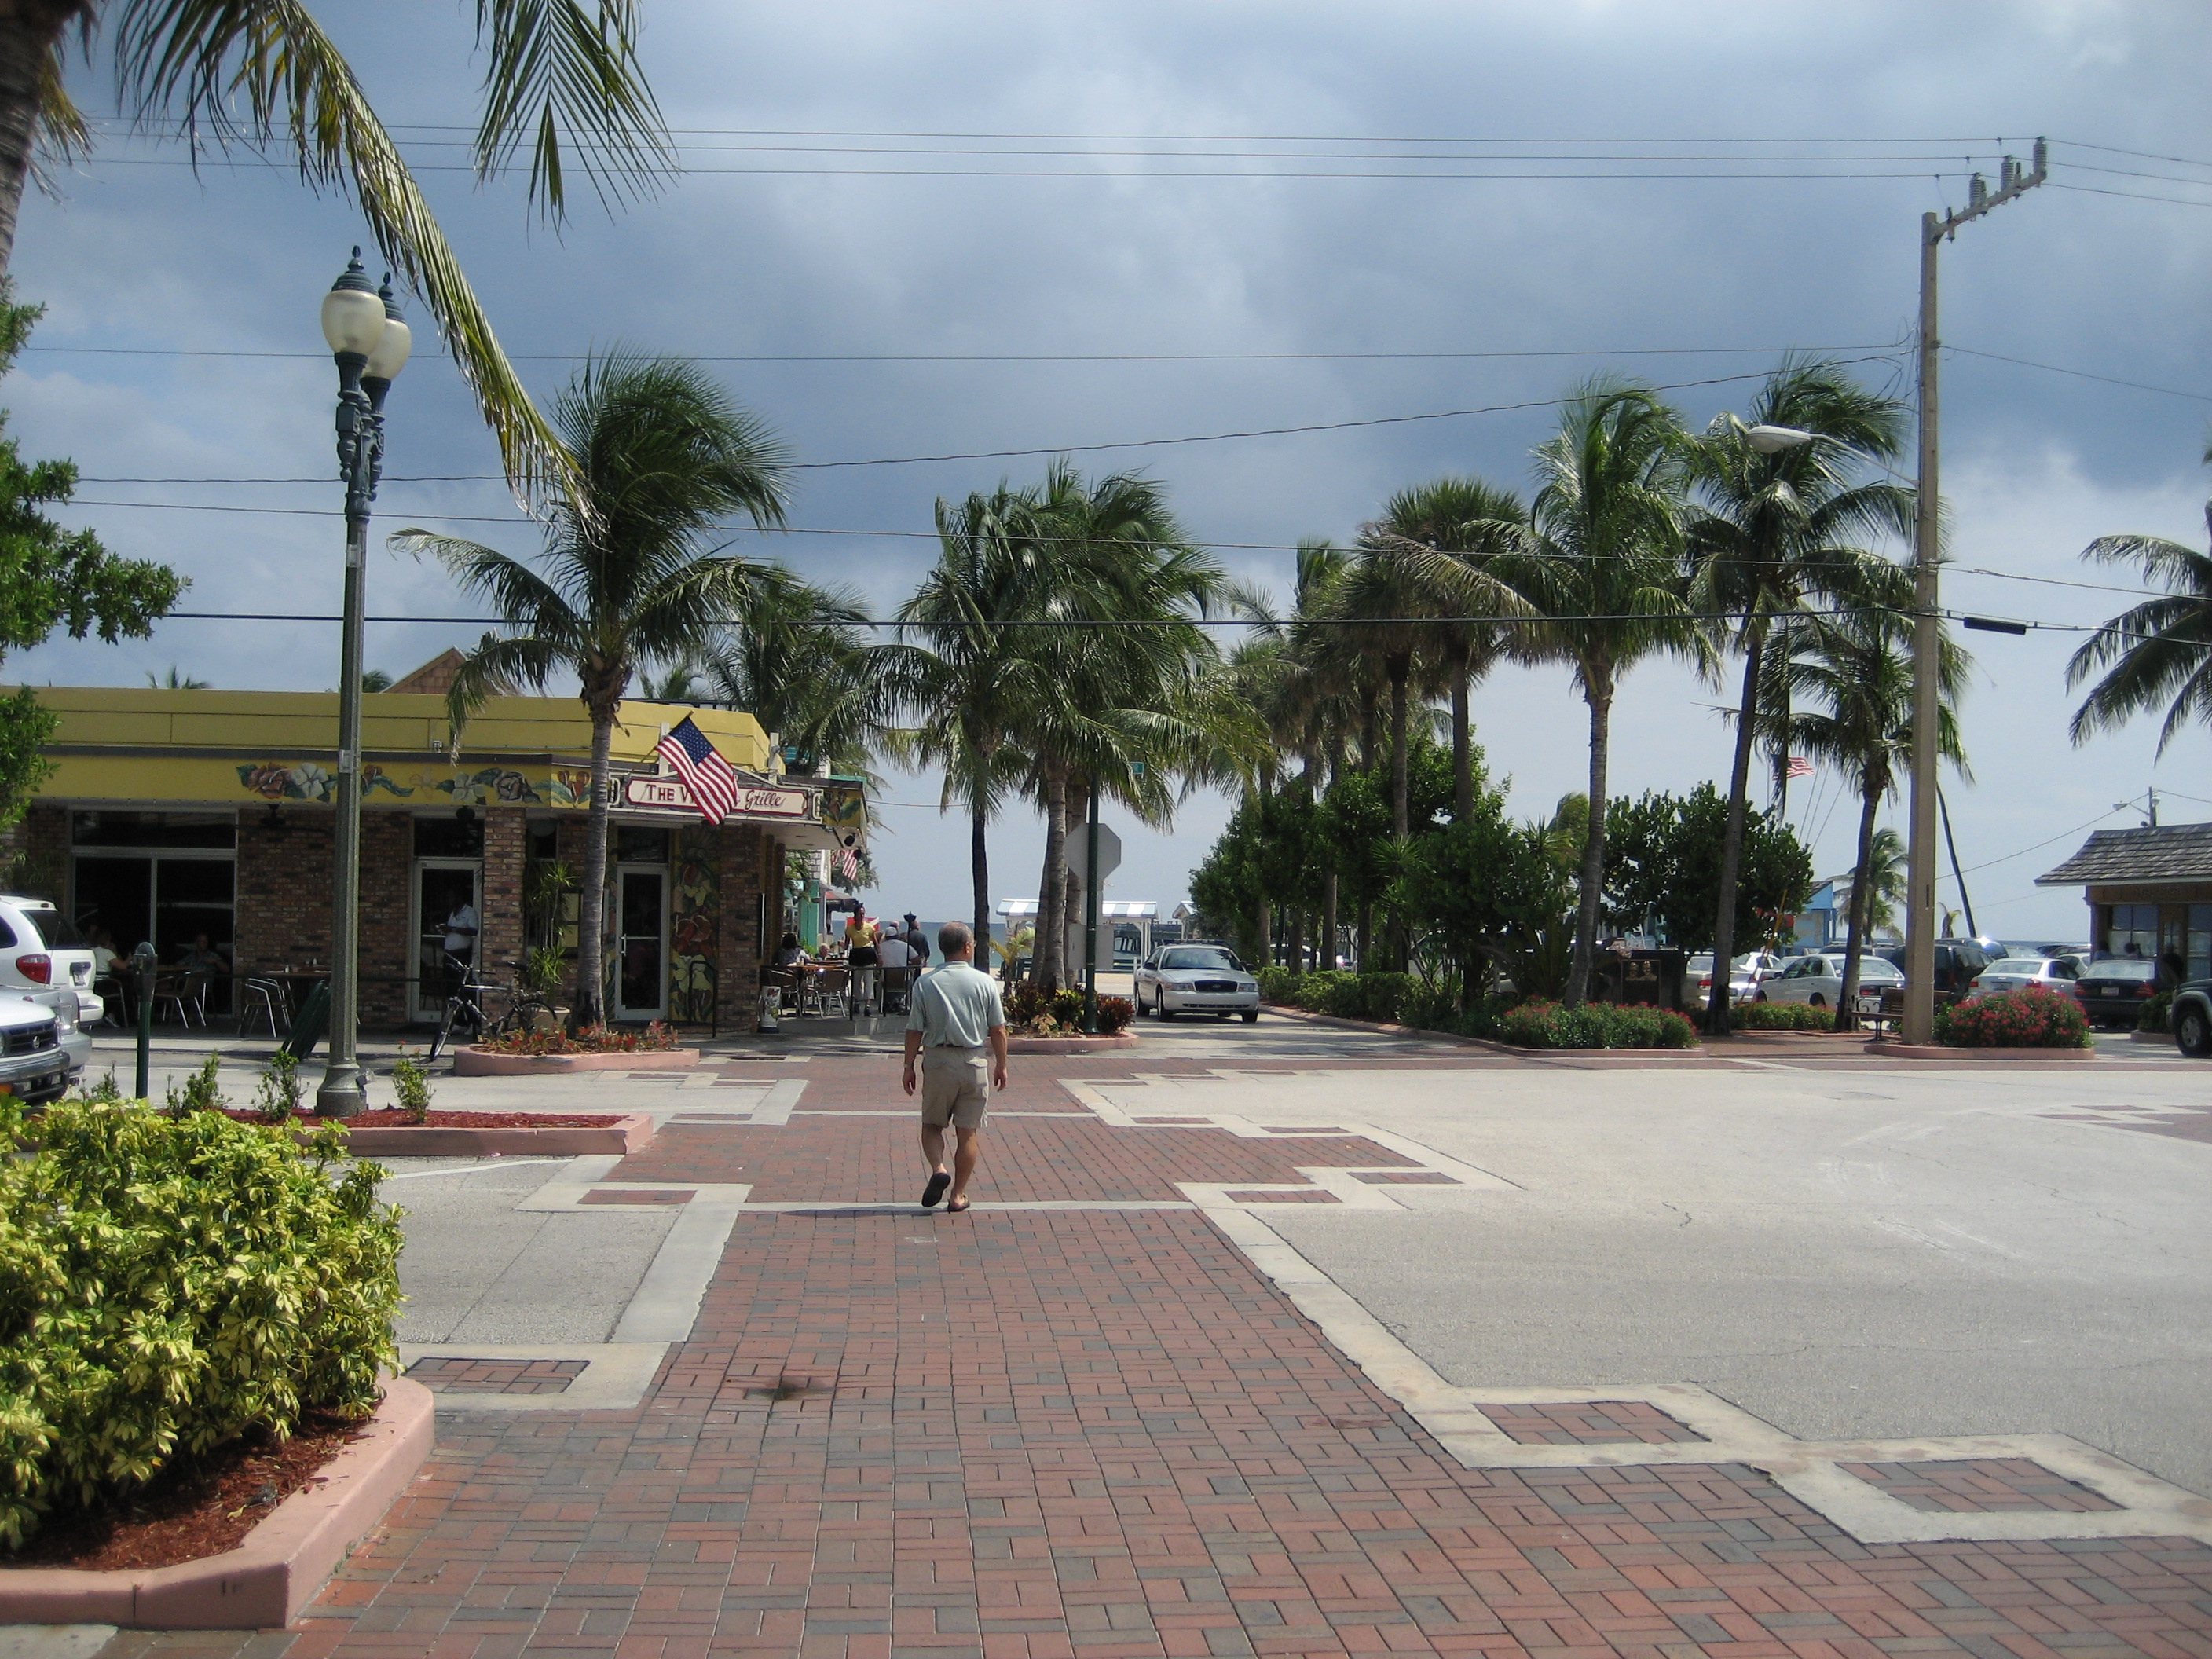 Lauderdale-by-the-Sea